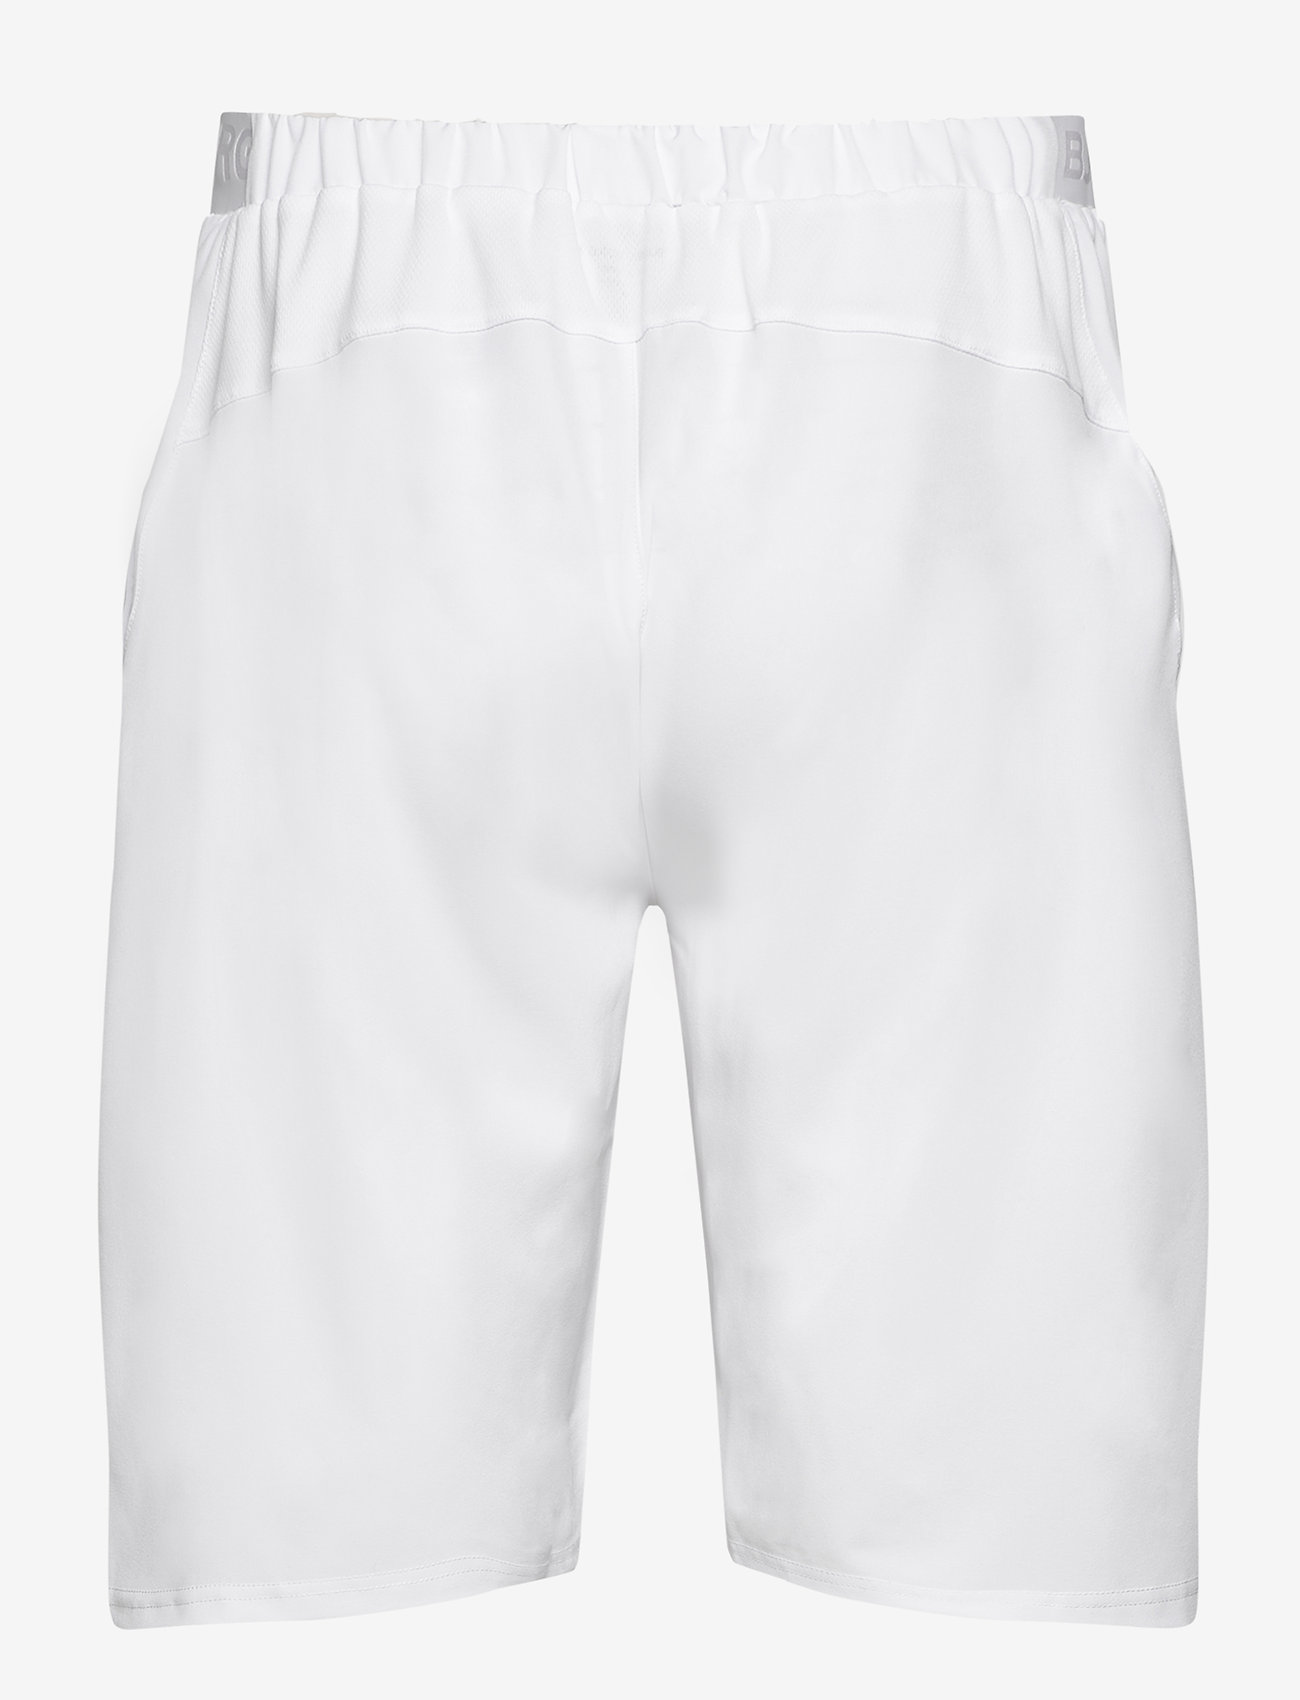 Björn Borg - SHORTS TARIK TARIK - casual shorts - brilliant white - 1